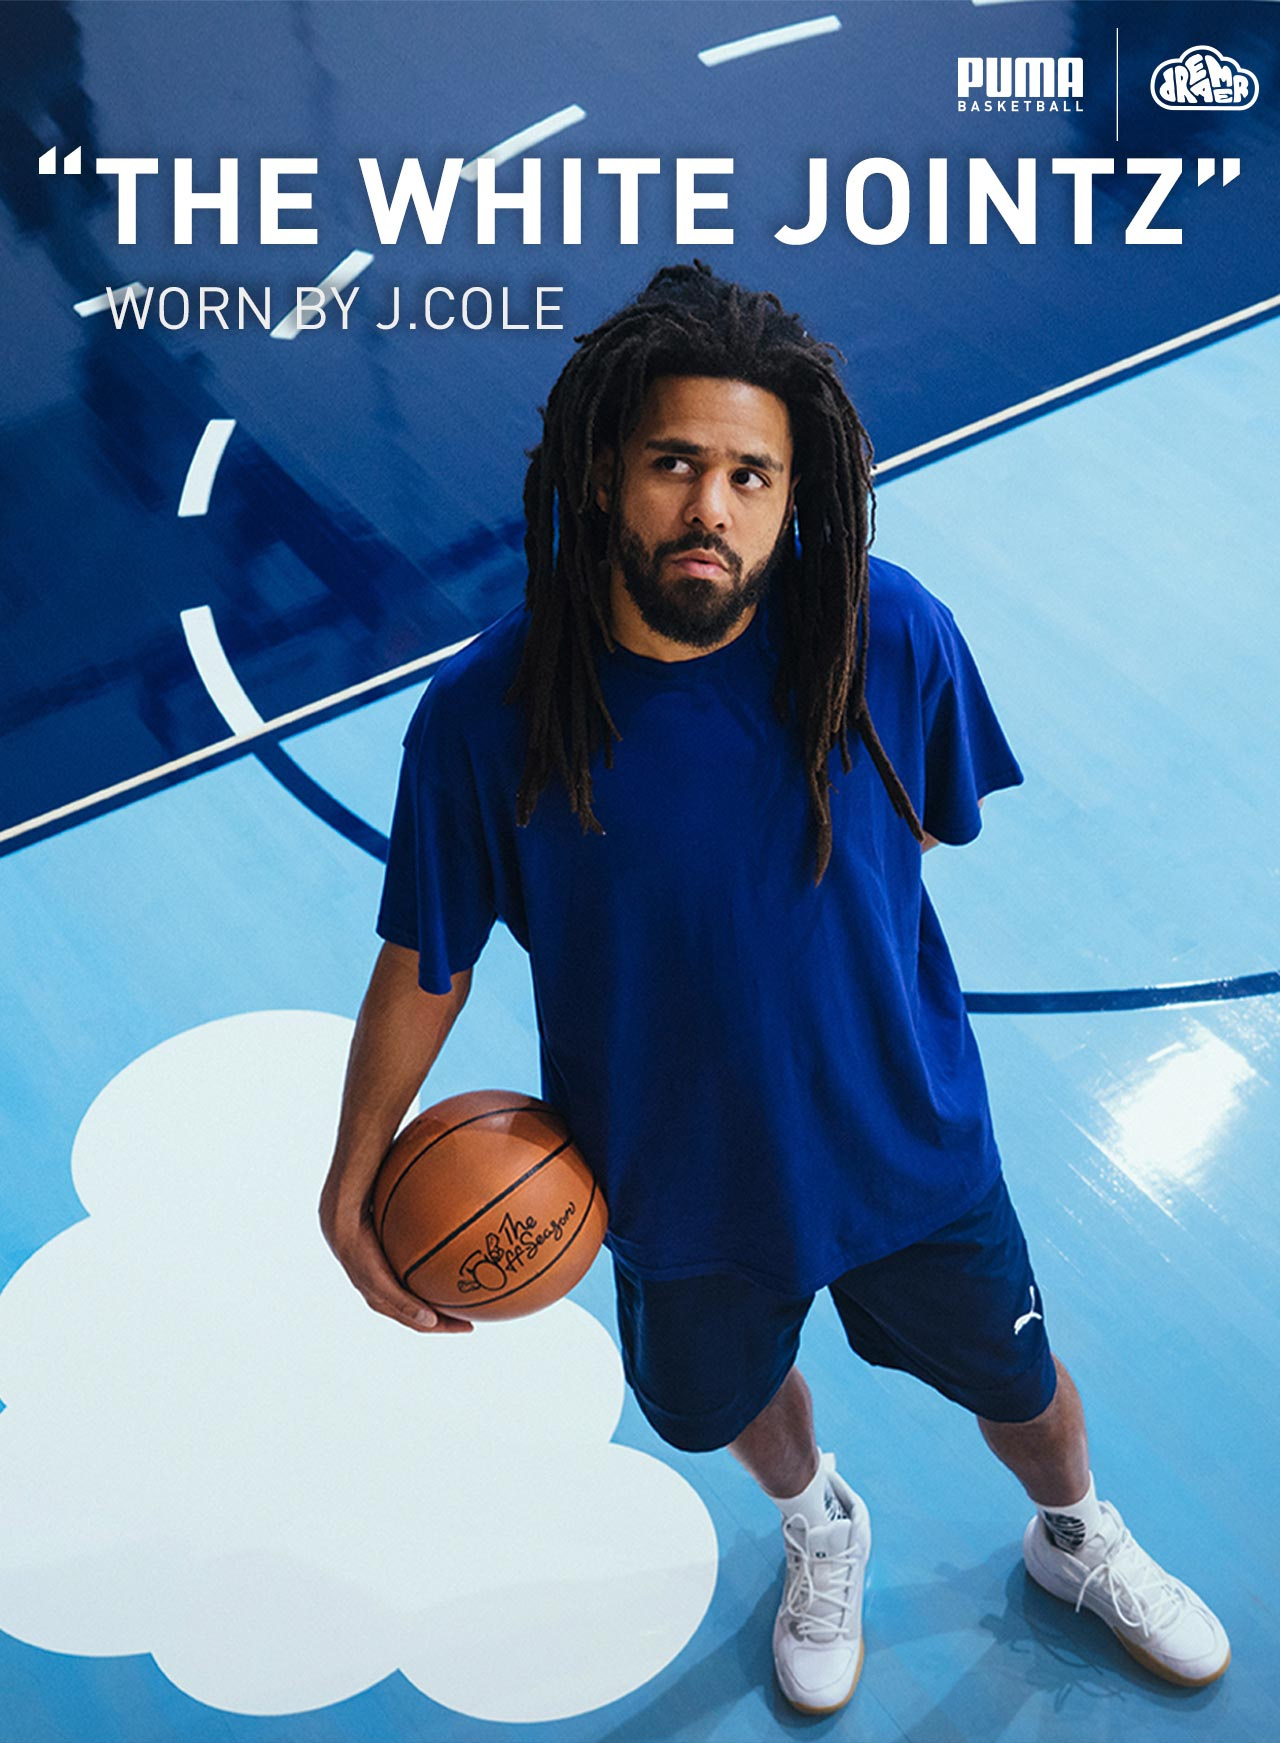 THE WHITE JOINTZ | WORN BY J. COLE